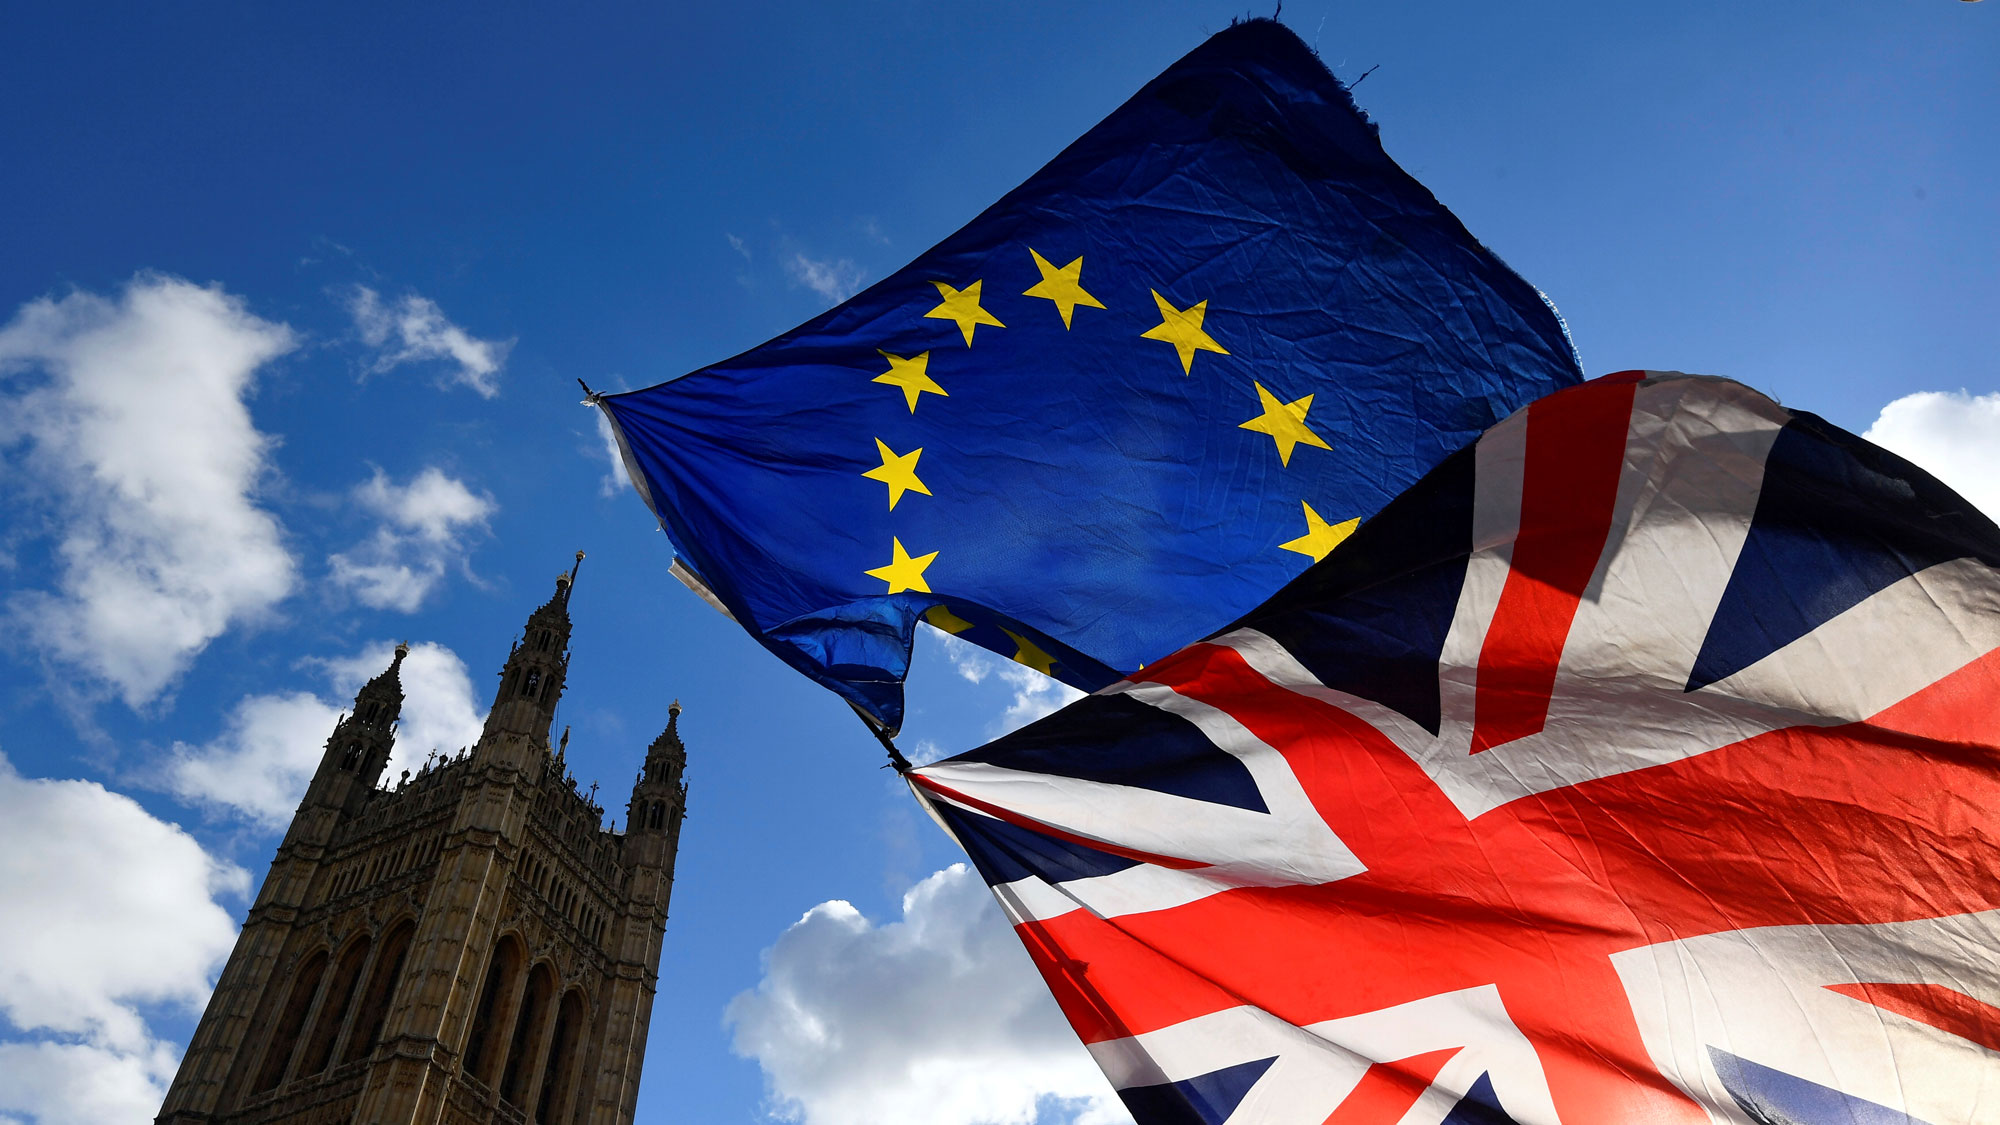 British and EU  are shown flying on the same line with the Houses of Parliament in London in the background.